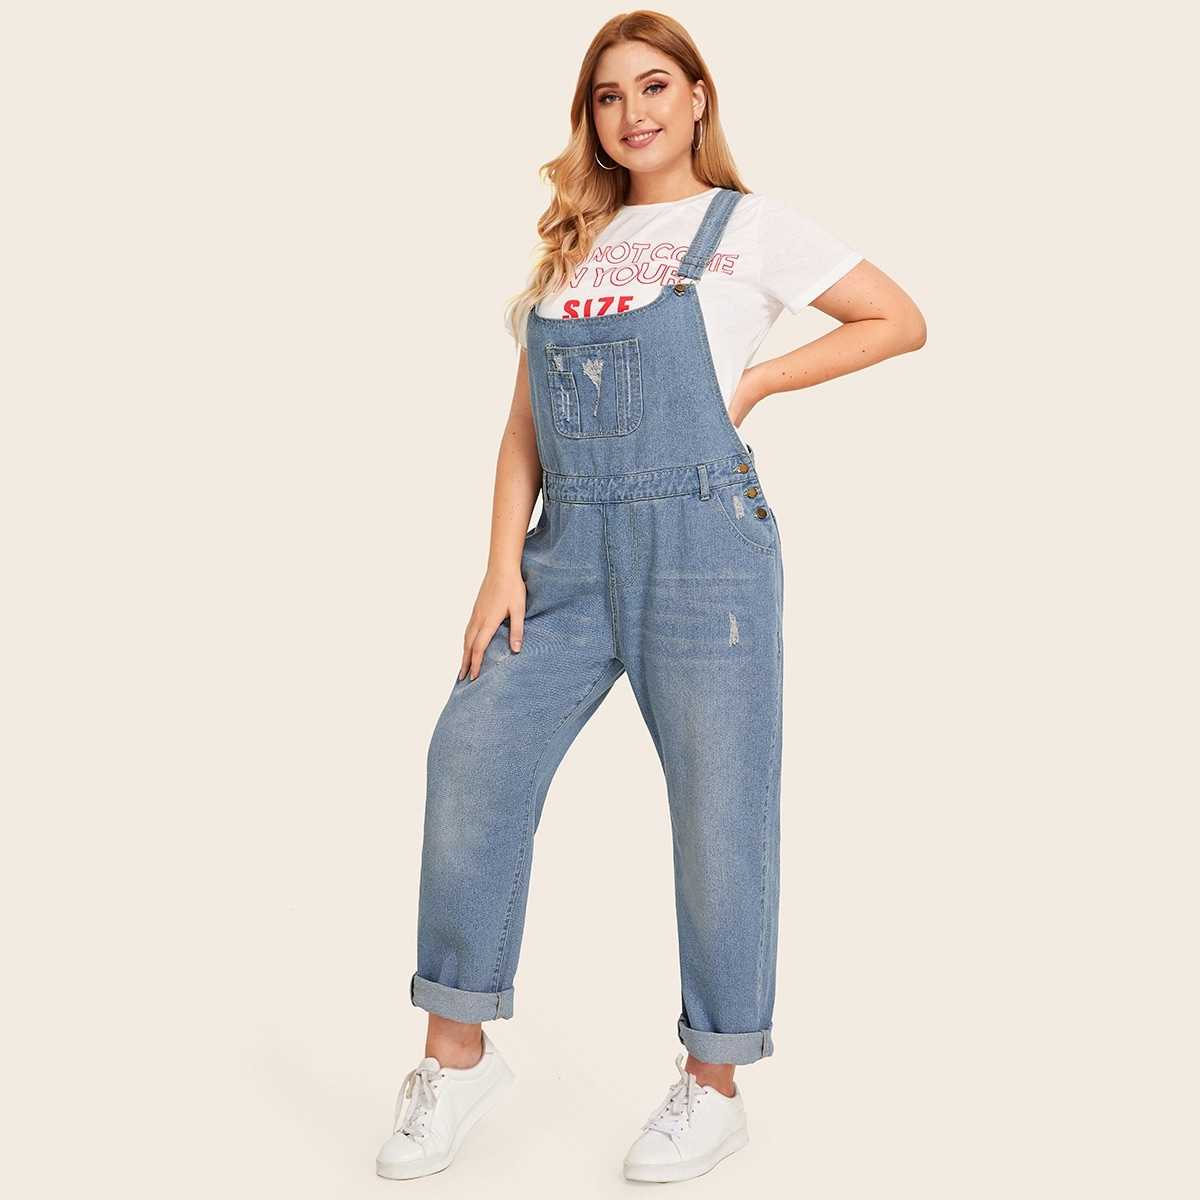 Plus Button Decoration Pocket Ripped Denim Overalls in Blue by ROMWE on GOOFASH